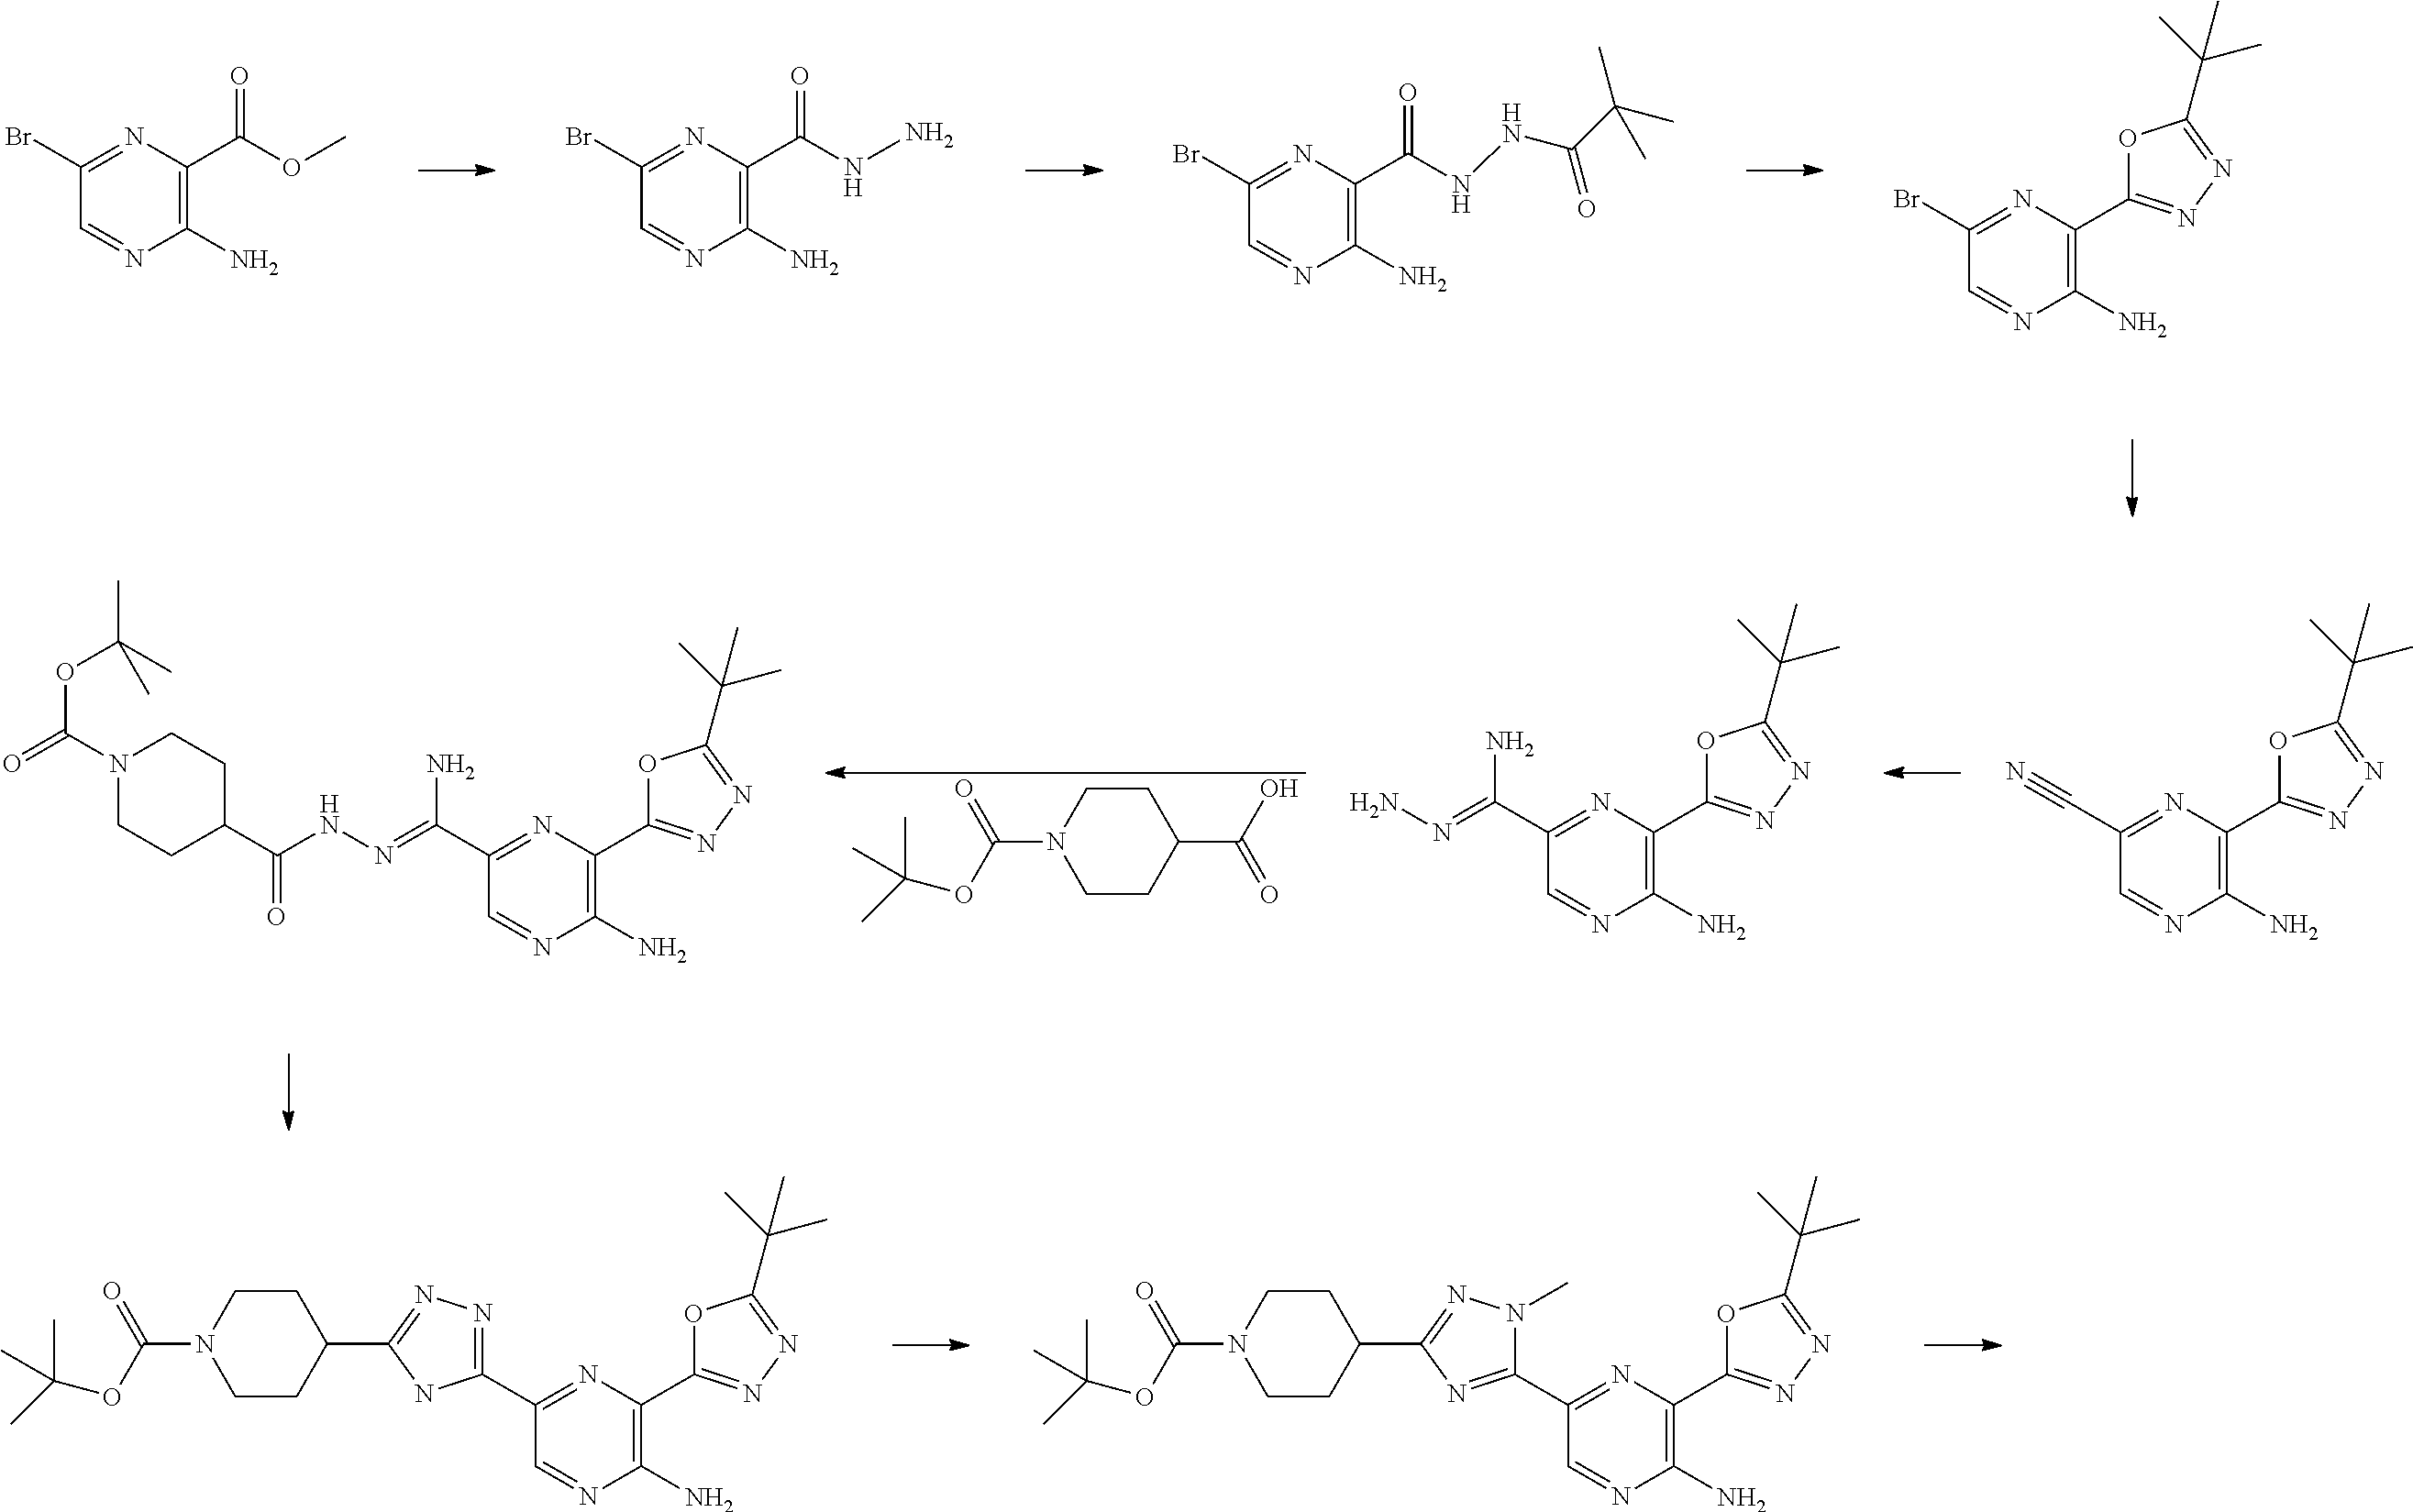 US9156831B2 - Chemical compounds - Google Patents